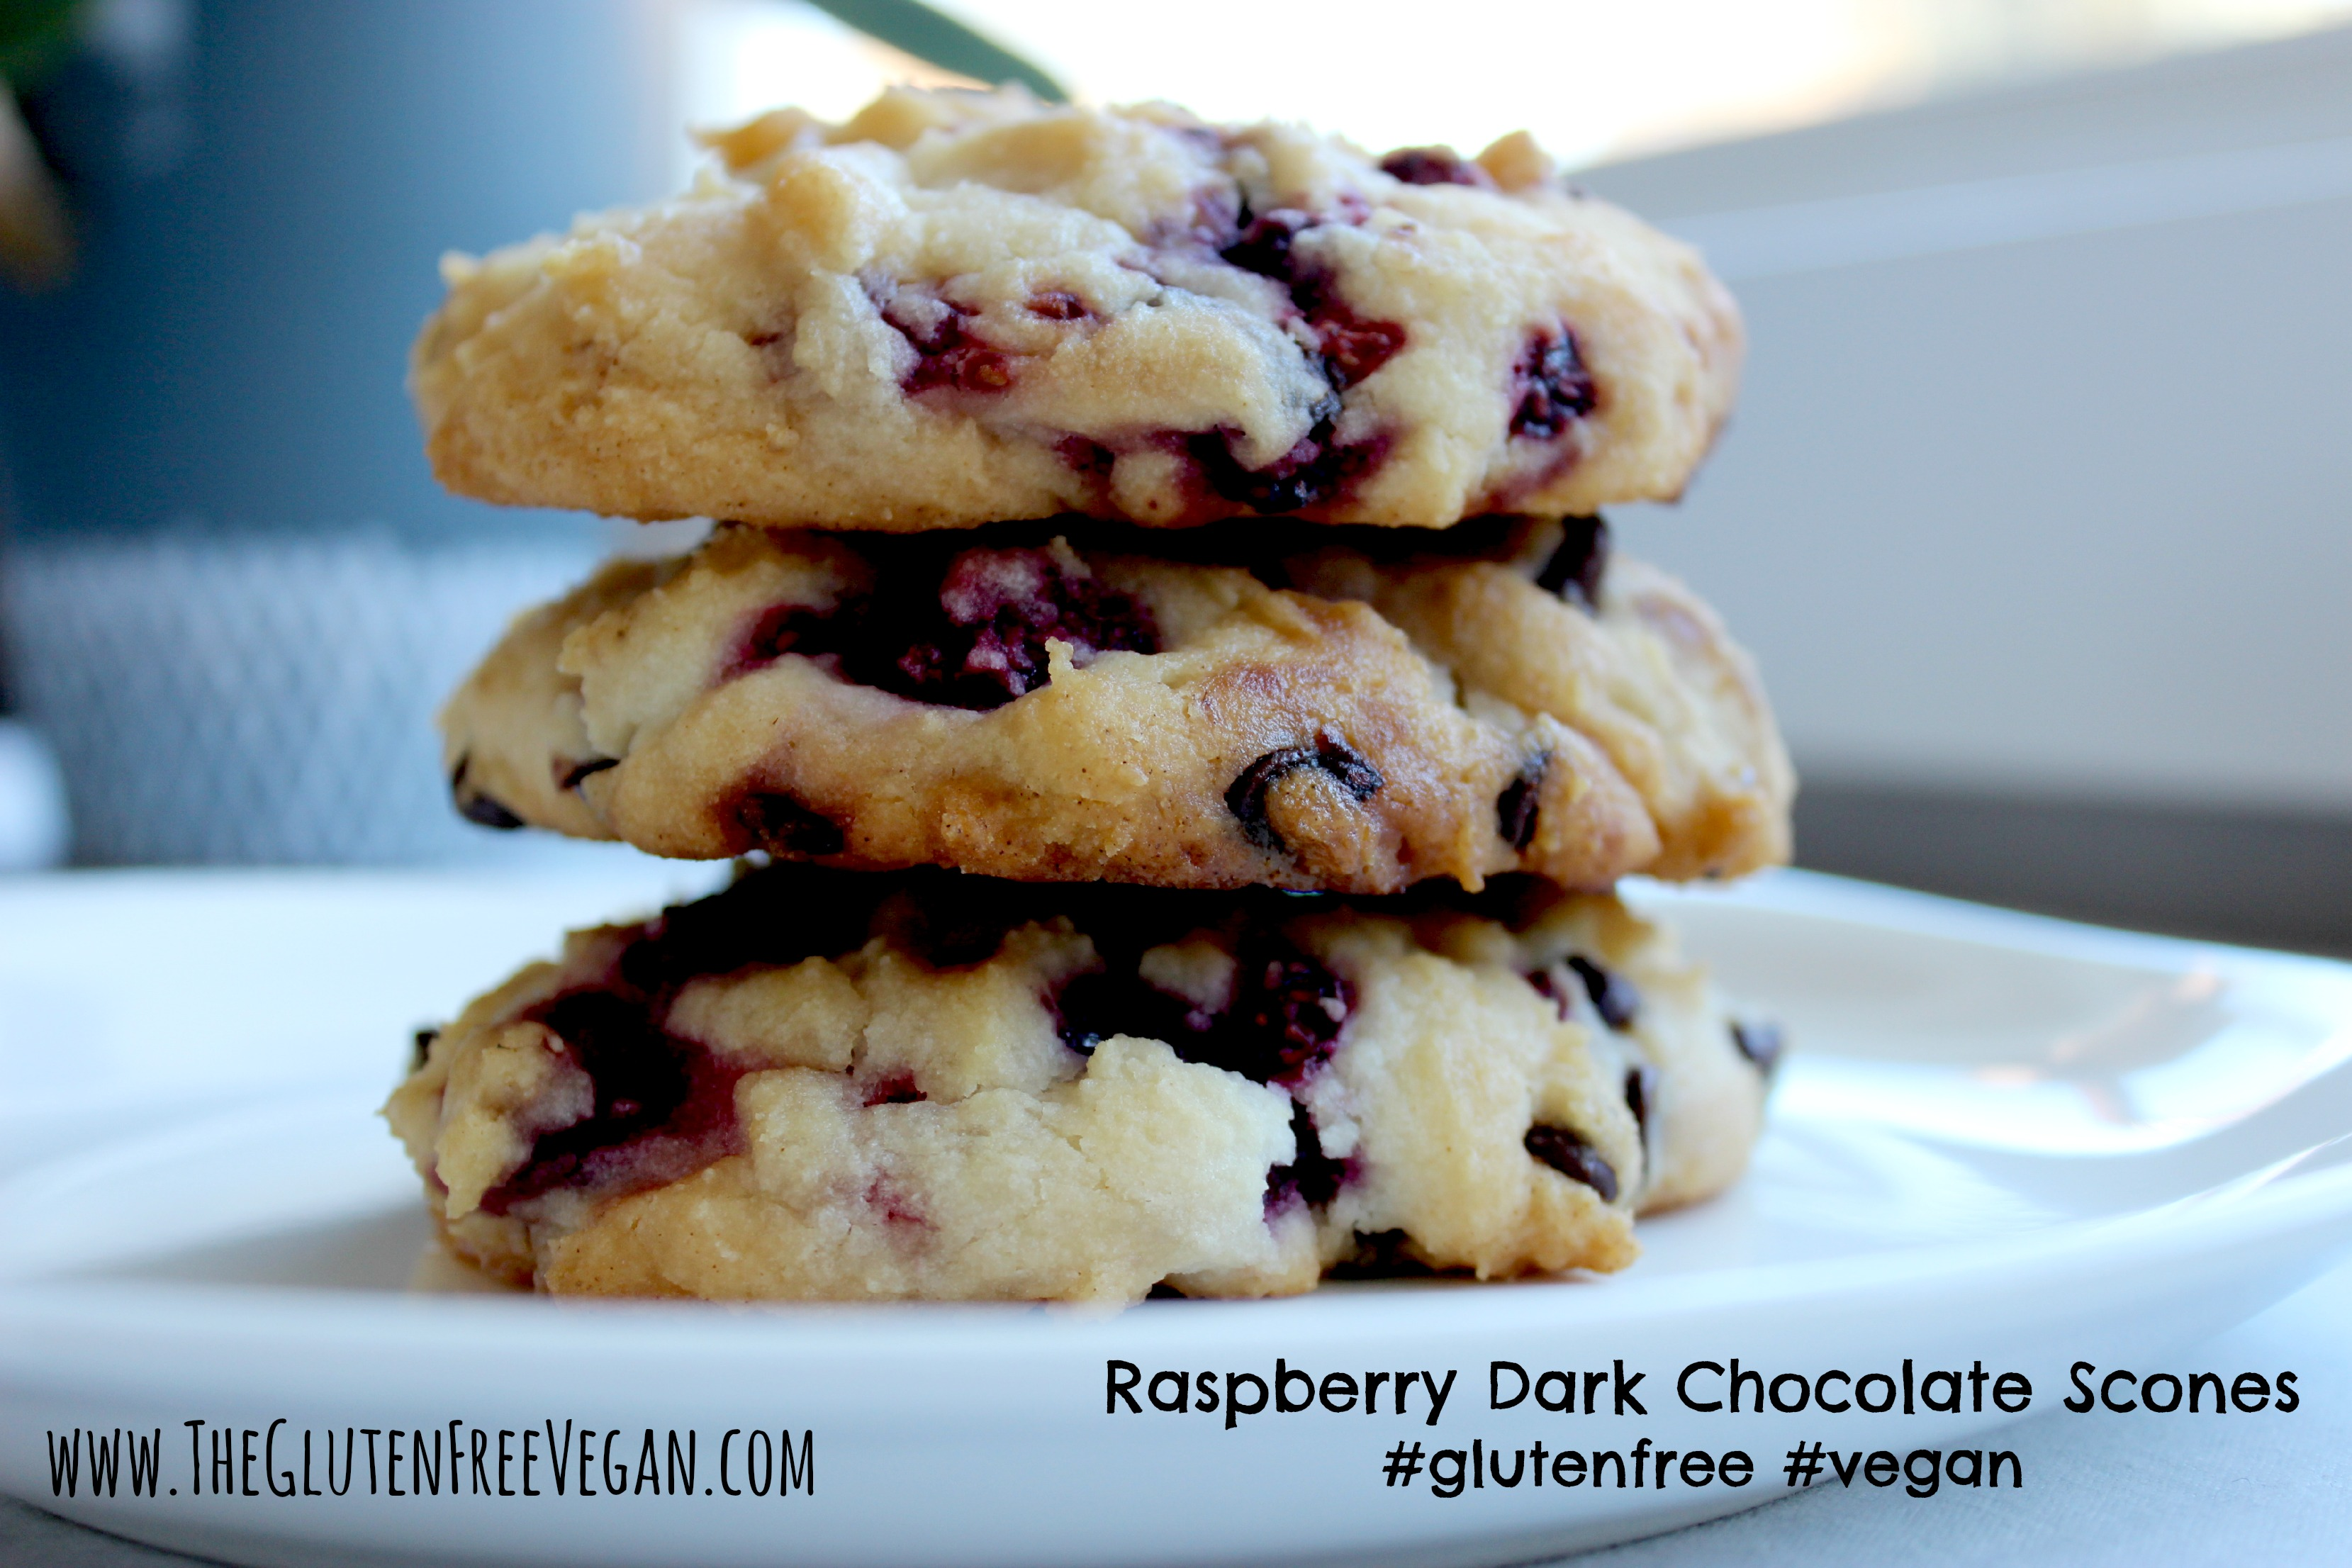 Raspberry Dark Chocolate Scones